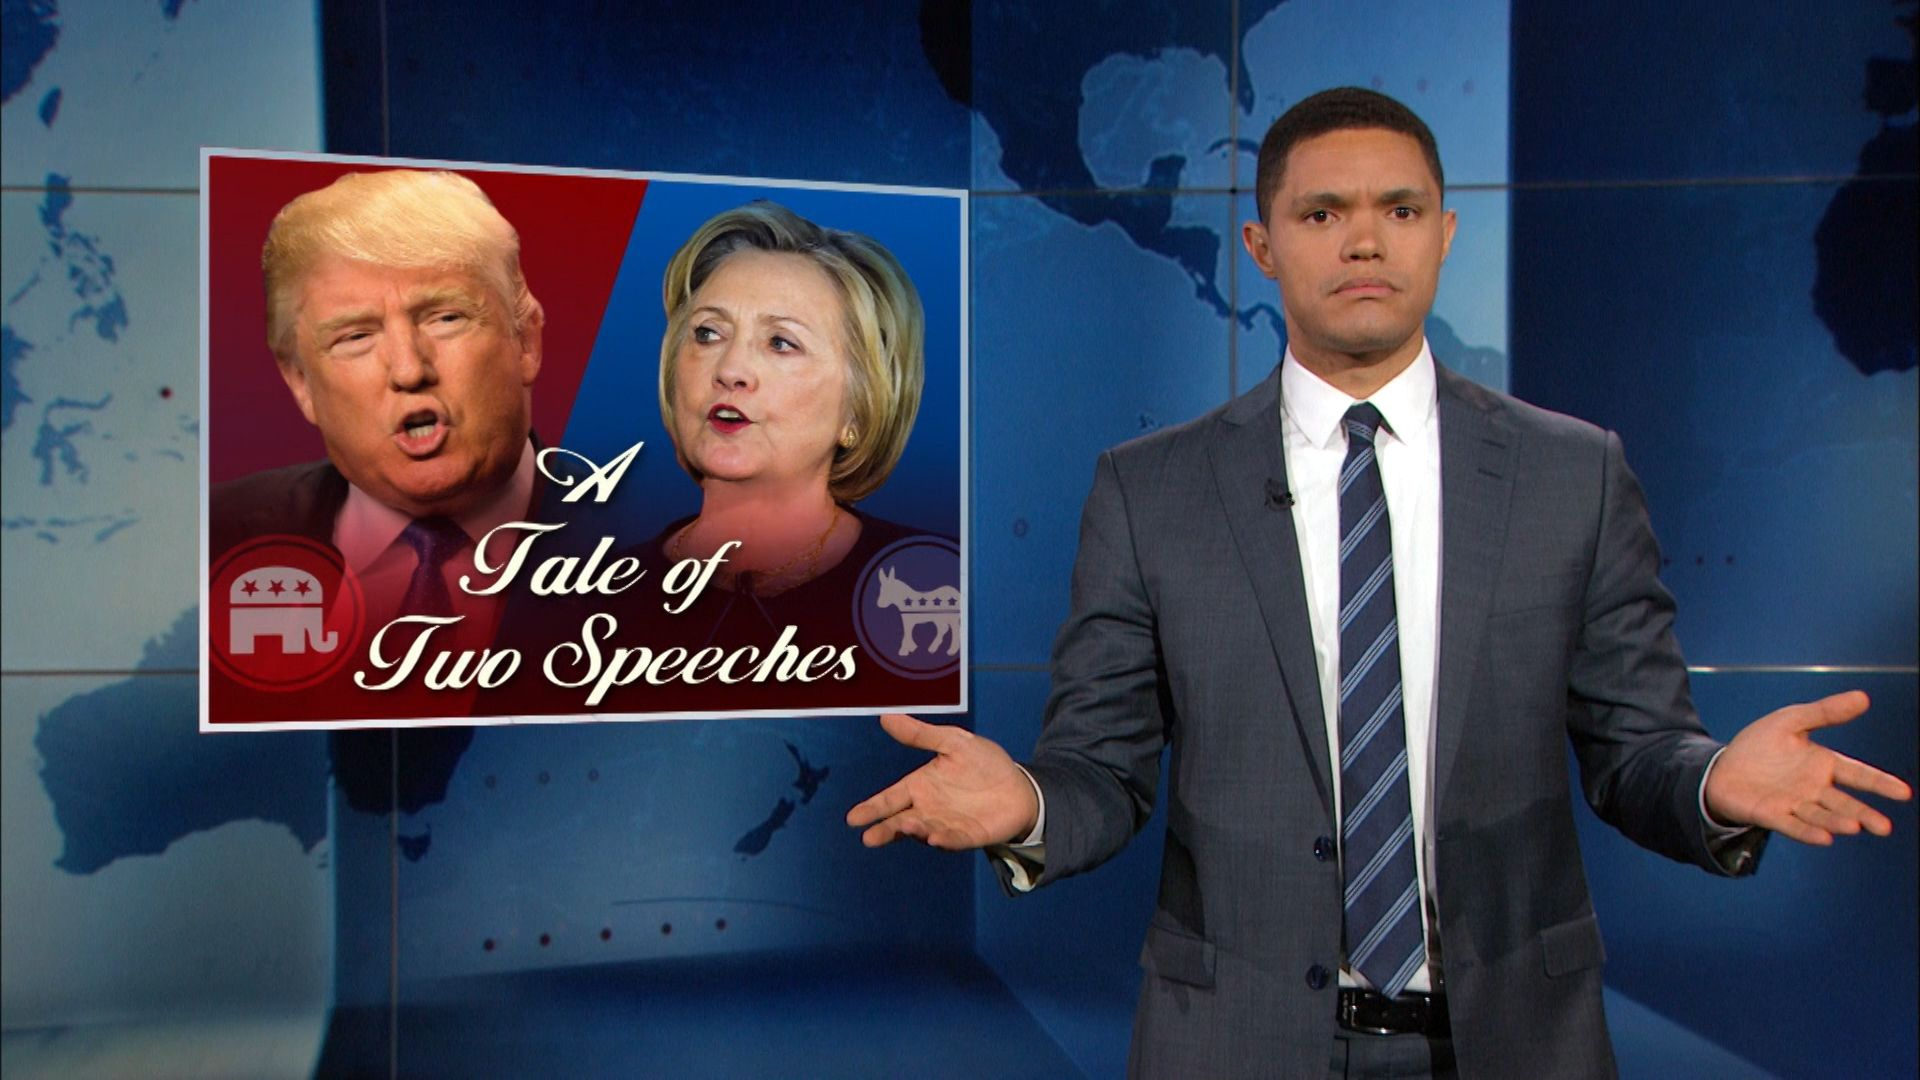 Hillary Clinton and Donald Trump React to the Orlando Shooting - The Daily Show with Trevor Noah (Video Clip)